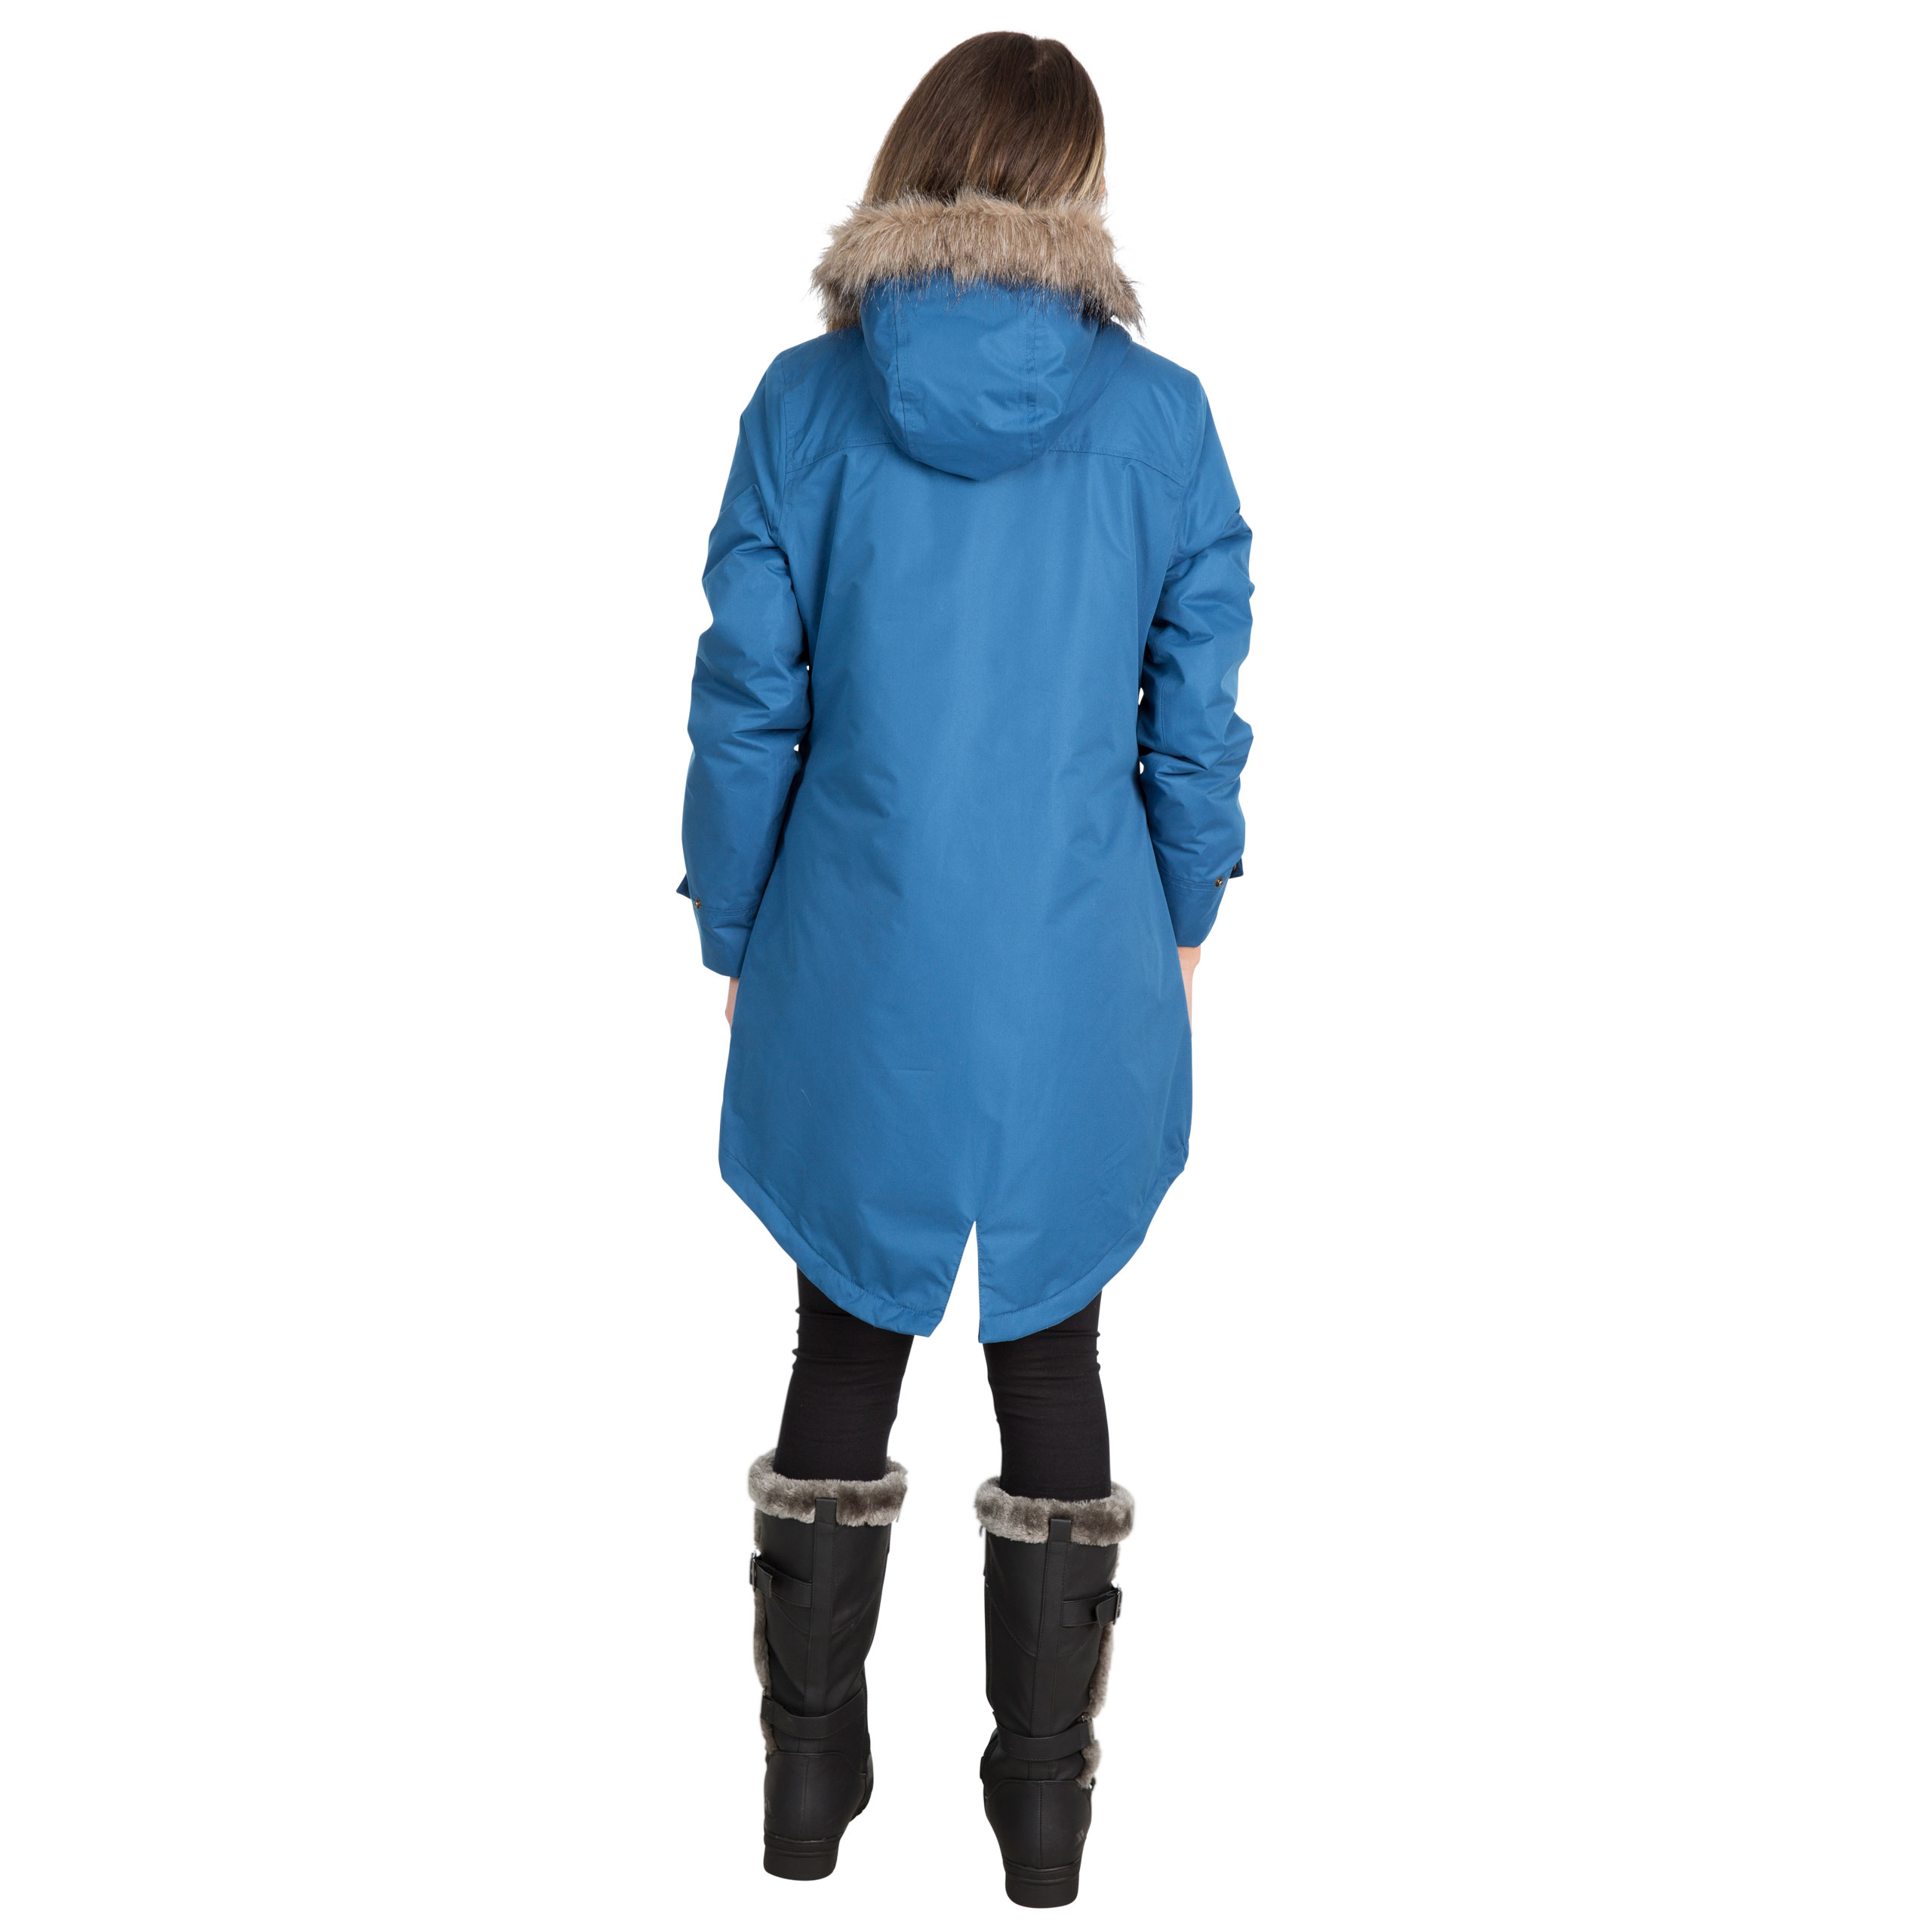 Trespass-Womens-Parka-Jacket-Waterproof-Hooded-Fur-Winter-Coat-XXS-XXXL thumbnail 17